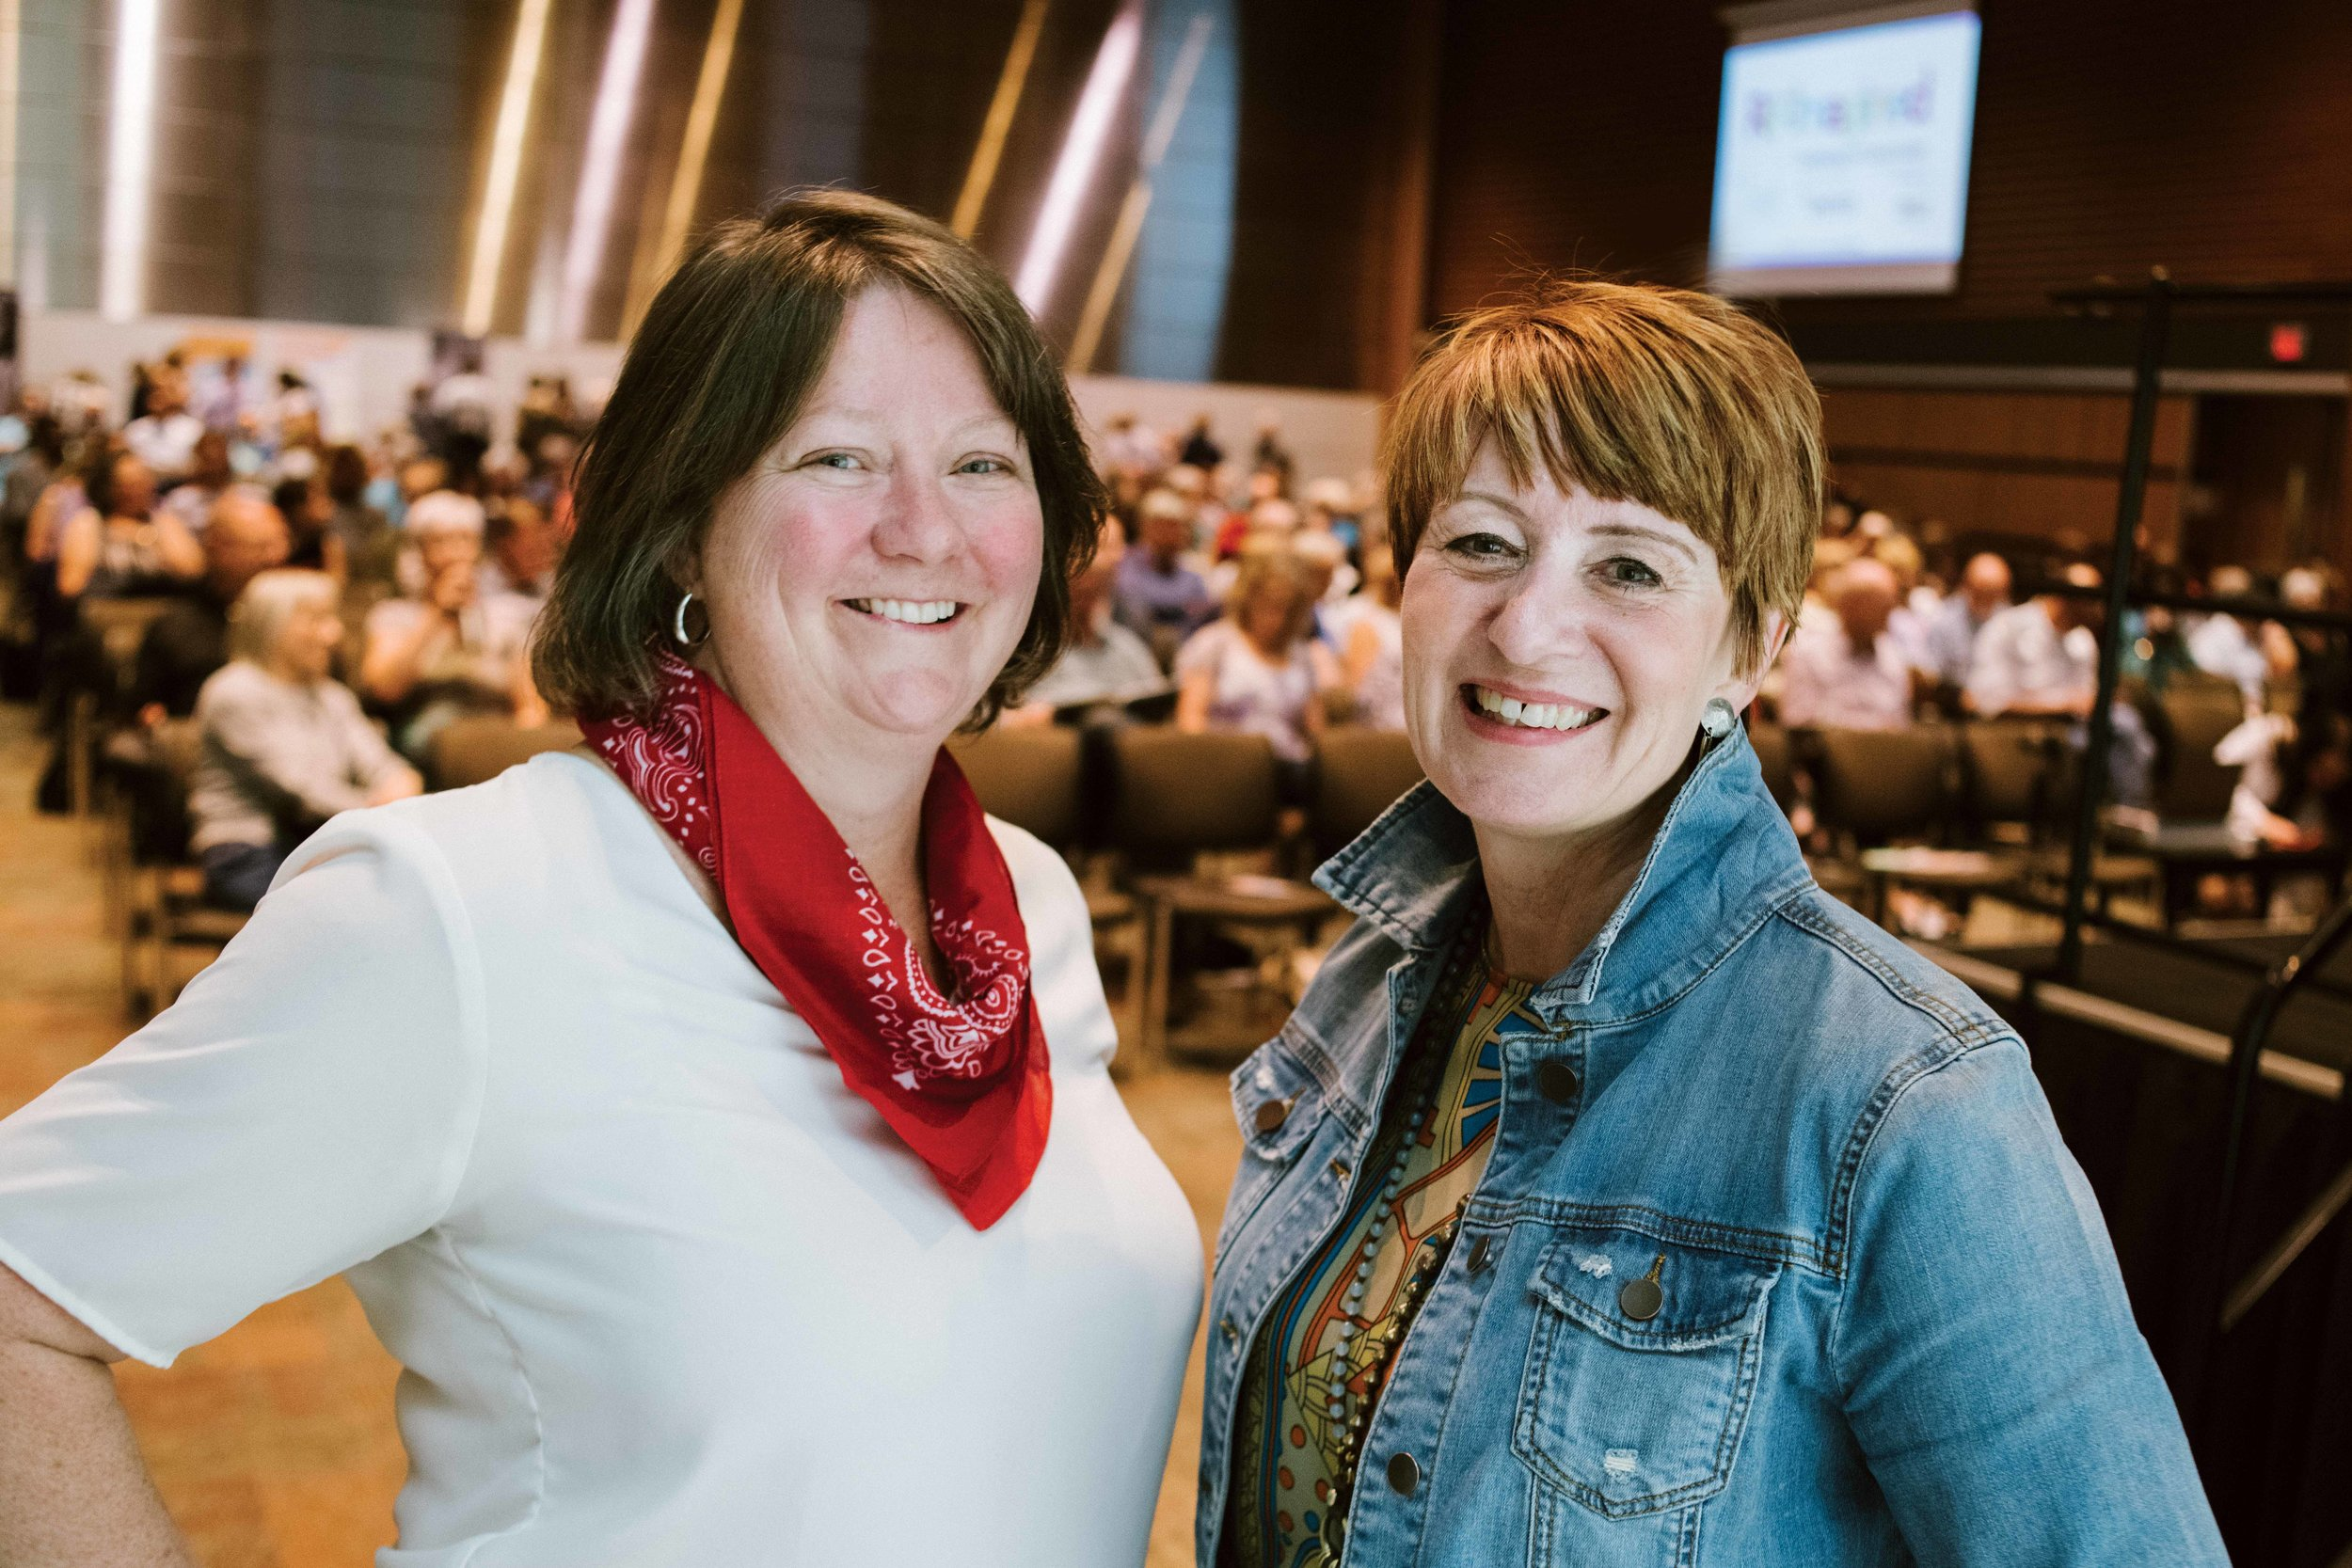 Kim Brundrit (left) and Barb Ferguson (right) at the Dementia Re-Imagined conference in July 2019. Photo by Jared Sych.